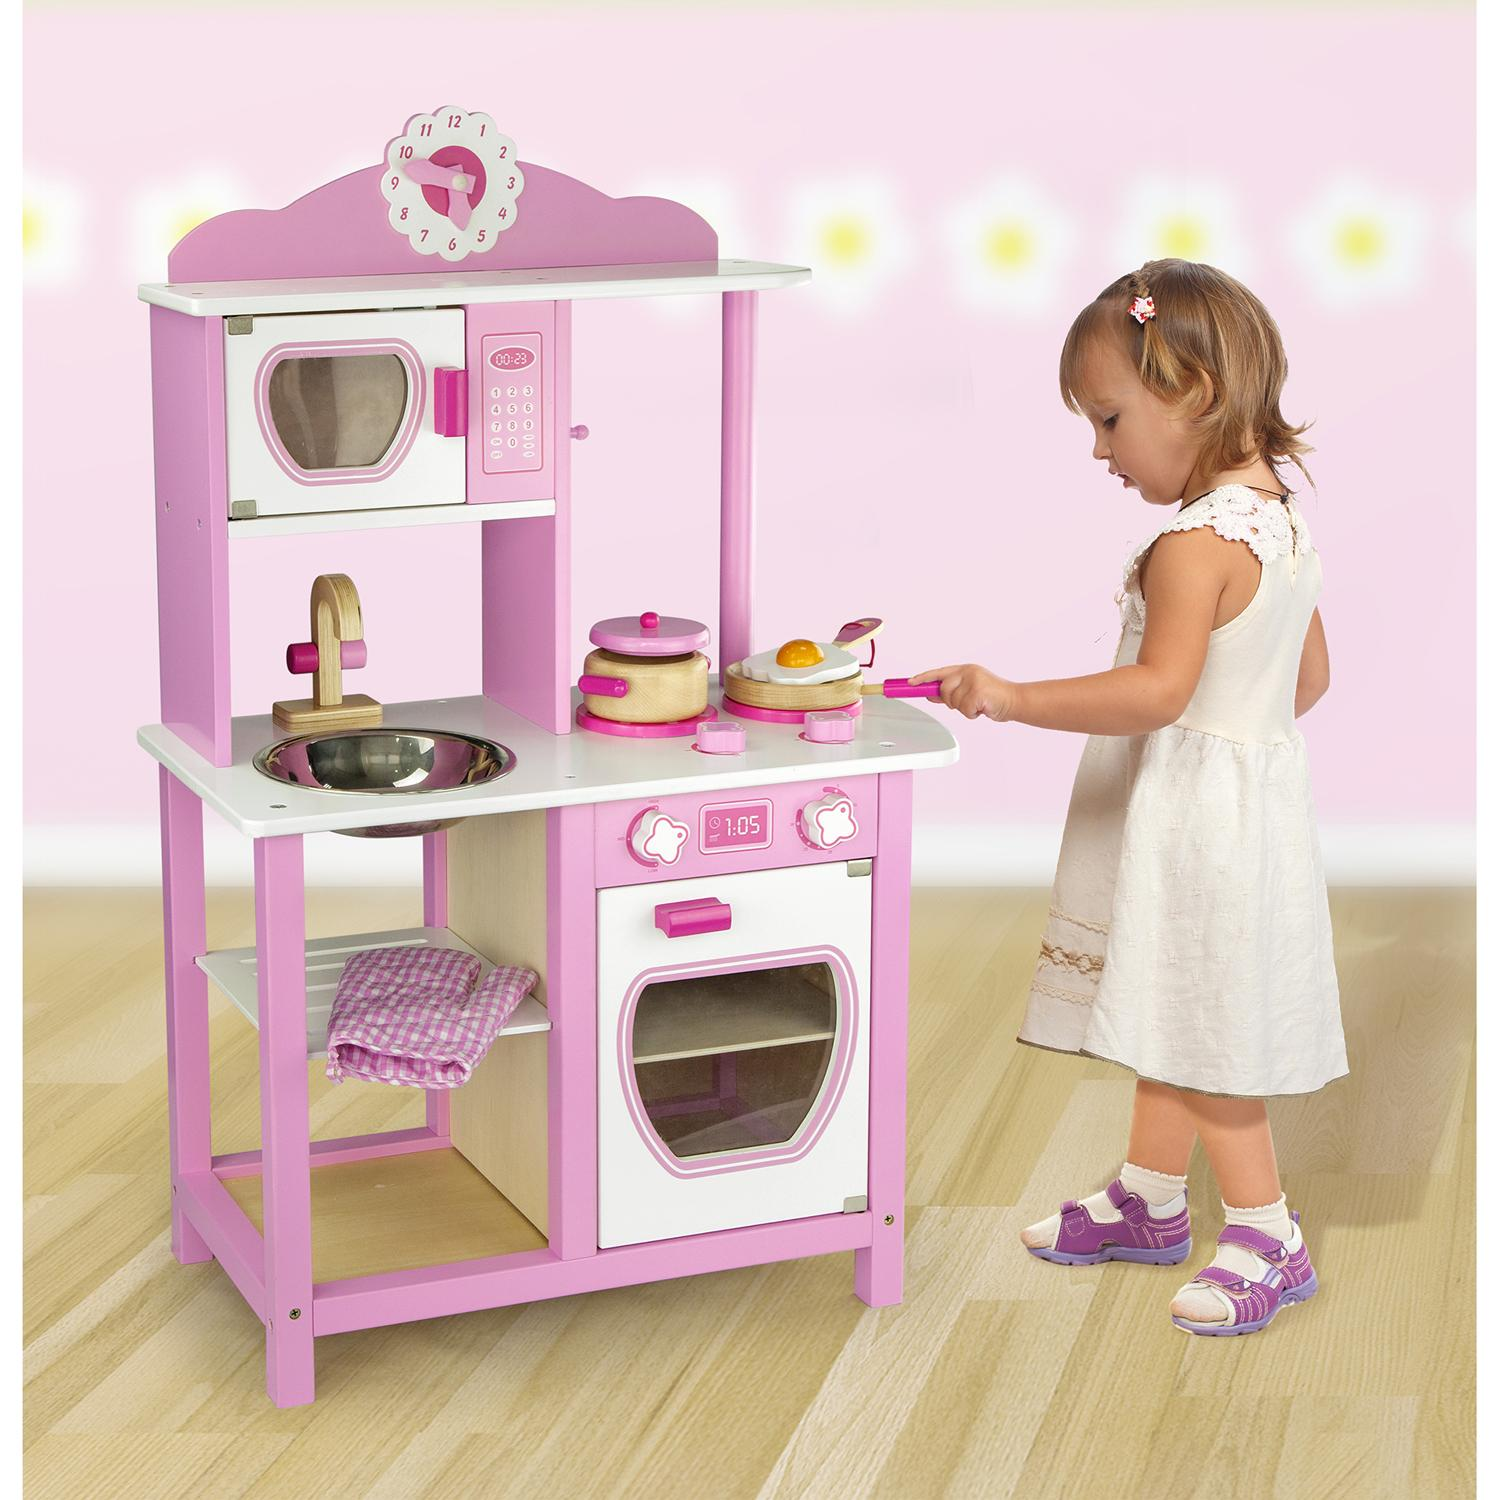 childrens kids pink wooden pretend playkitchen toy playset oven  - item specifics